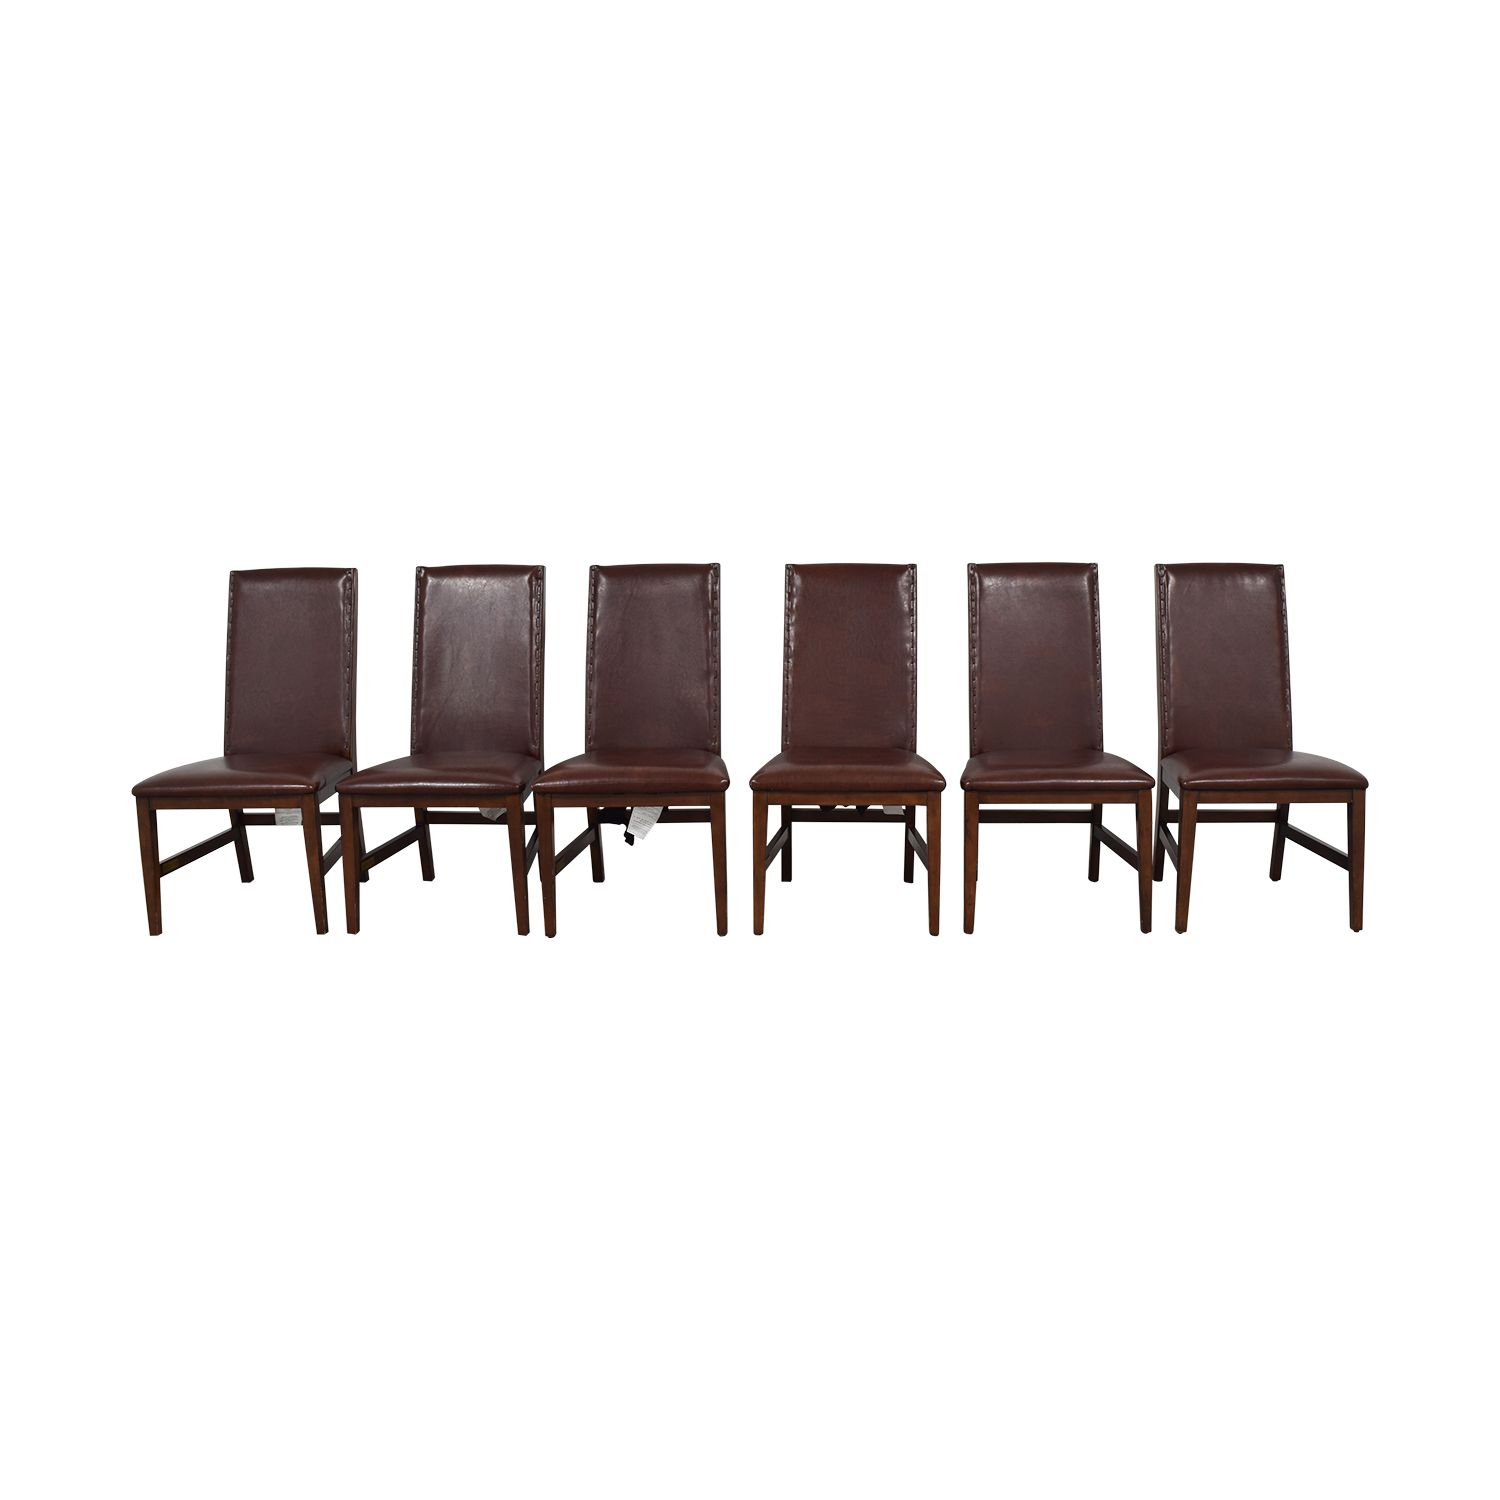 Nichols & Stone Nichols & Stone Brown Dining Chairs price